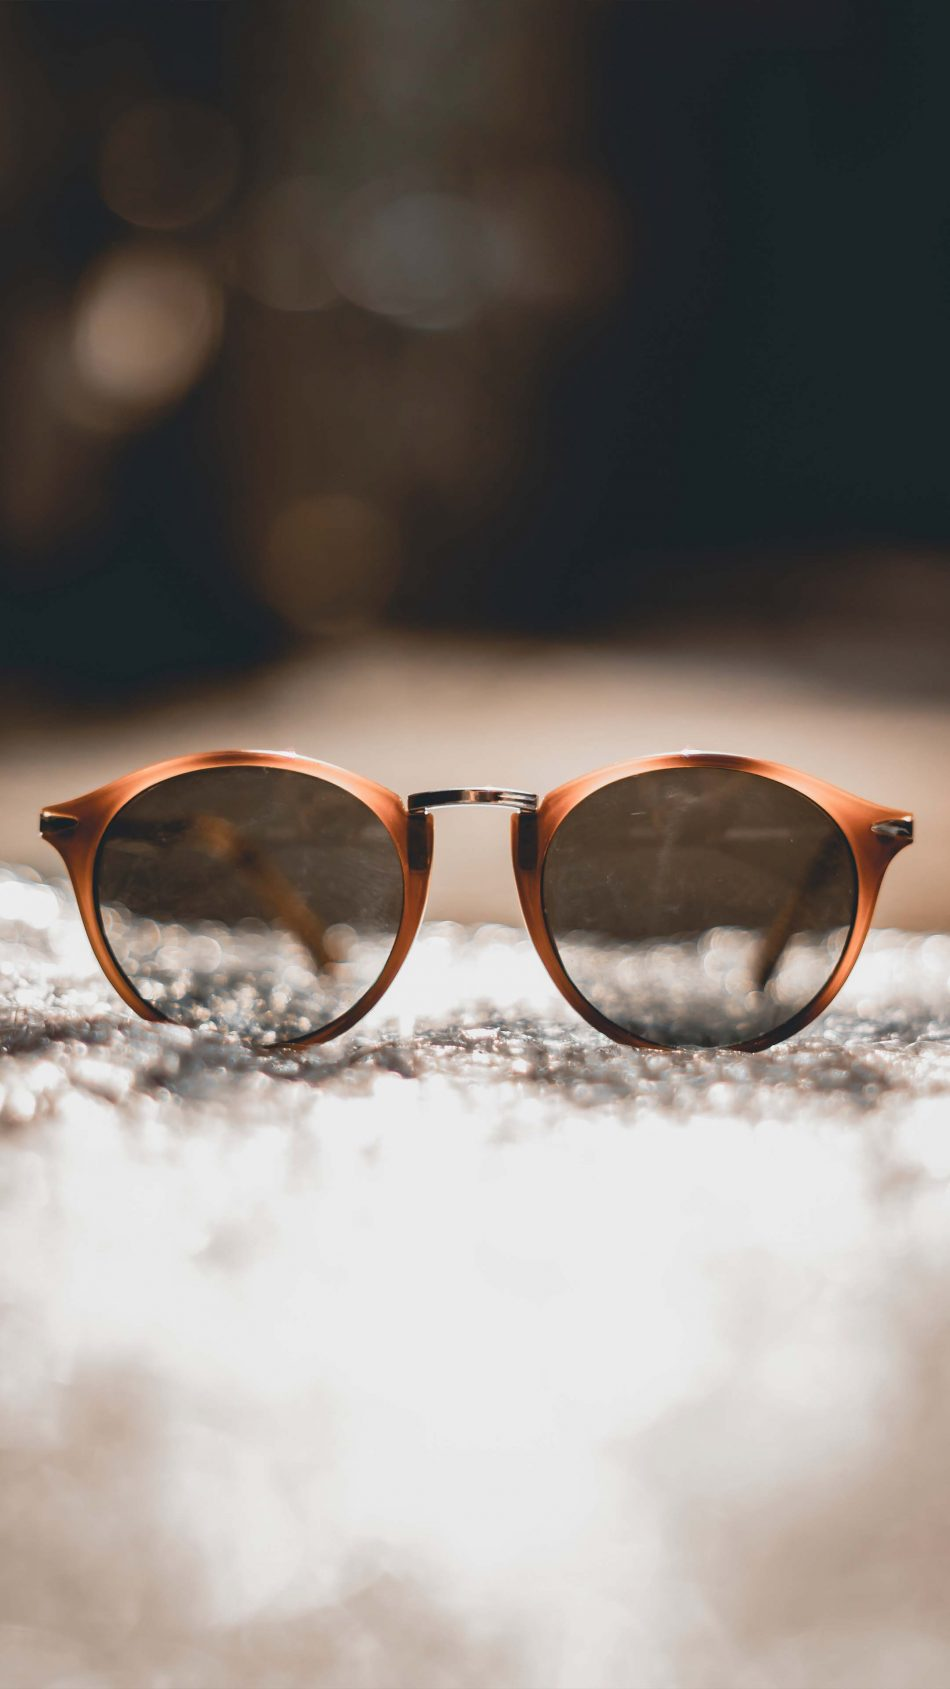 Sunglass Bokeh Background 4K Ultra HD Mobile Wallpaper